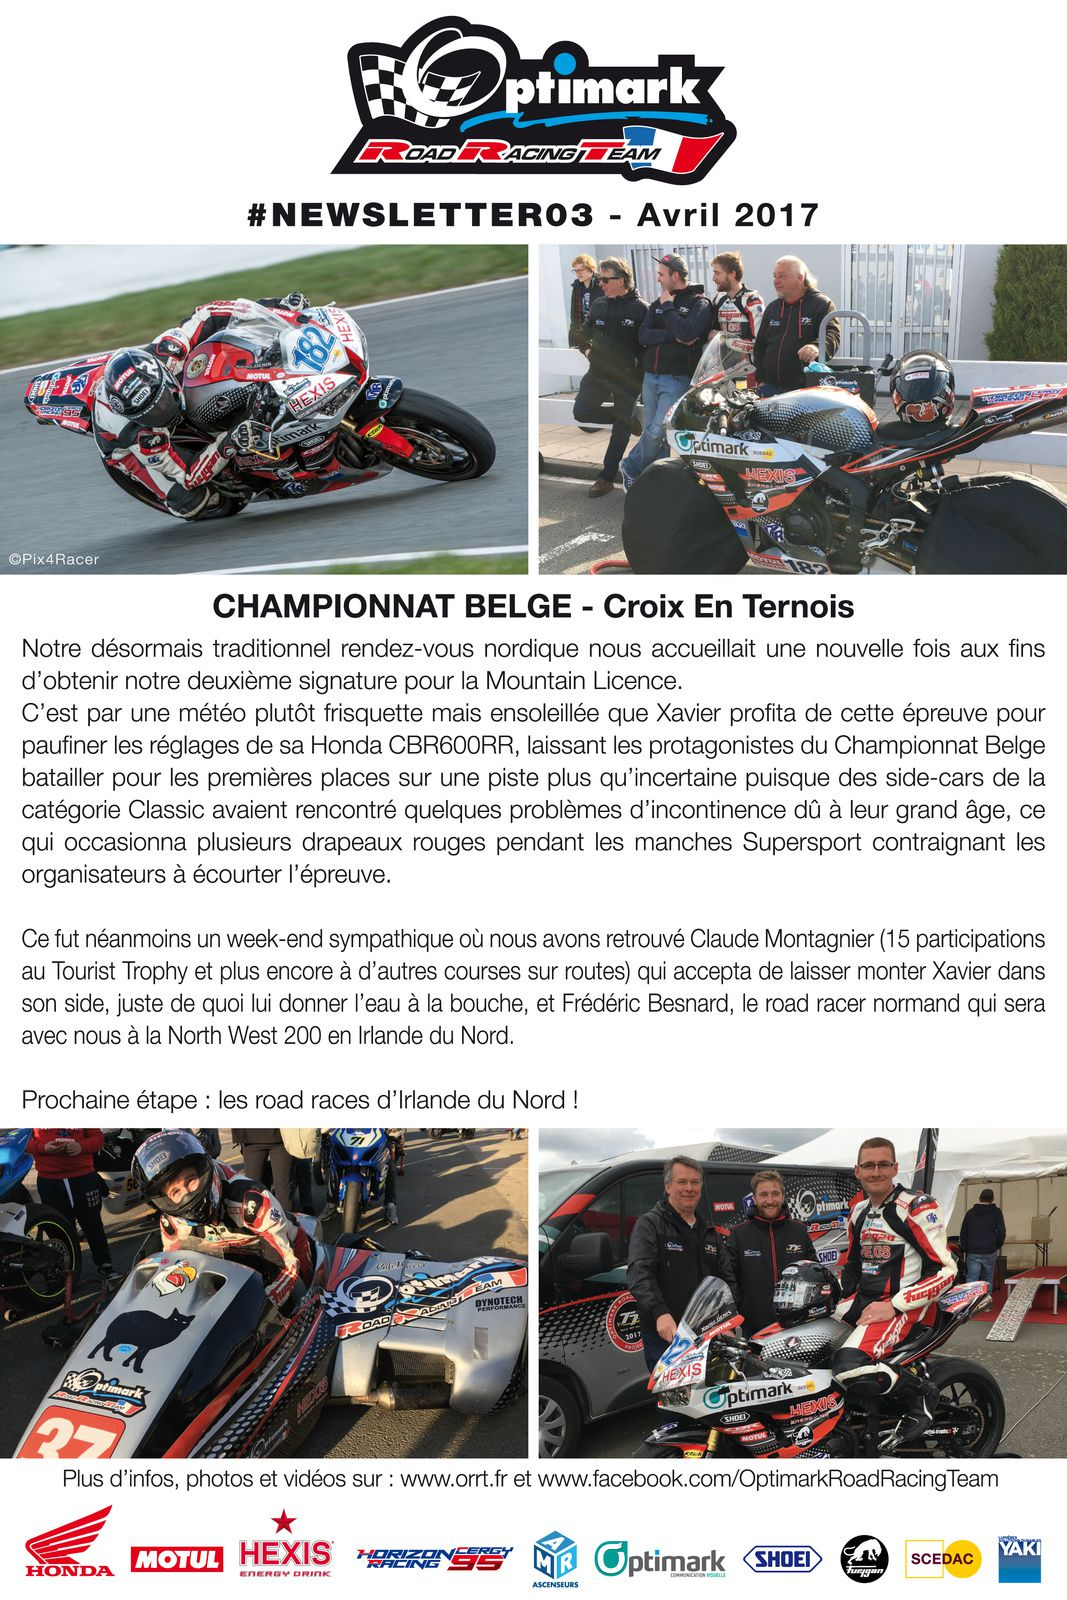 Newsletter #3 Optimark Road Racing Team